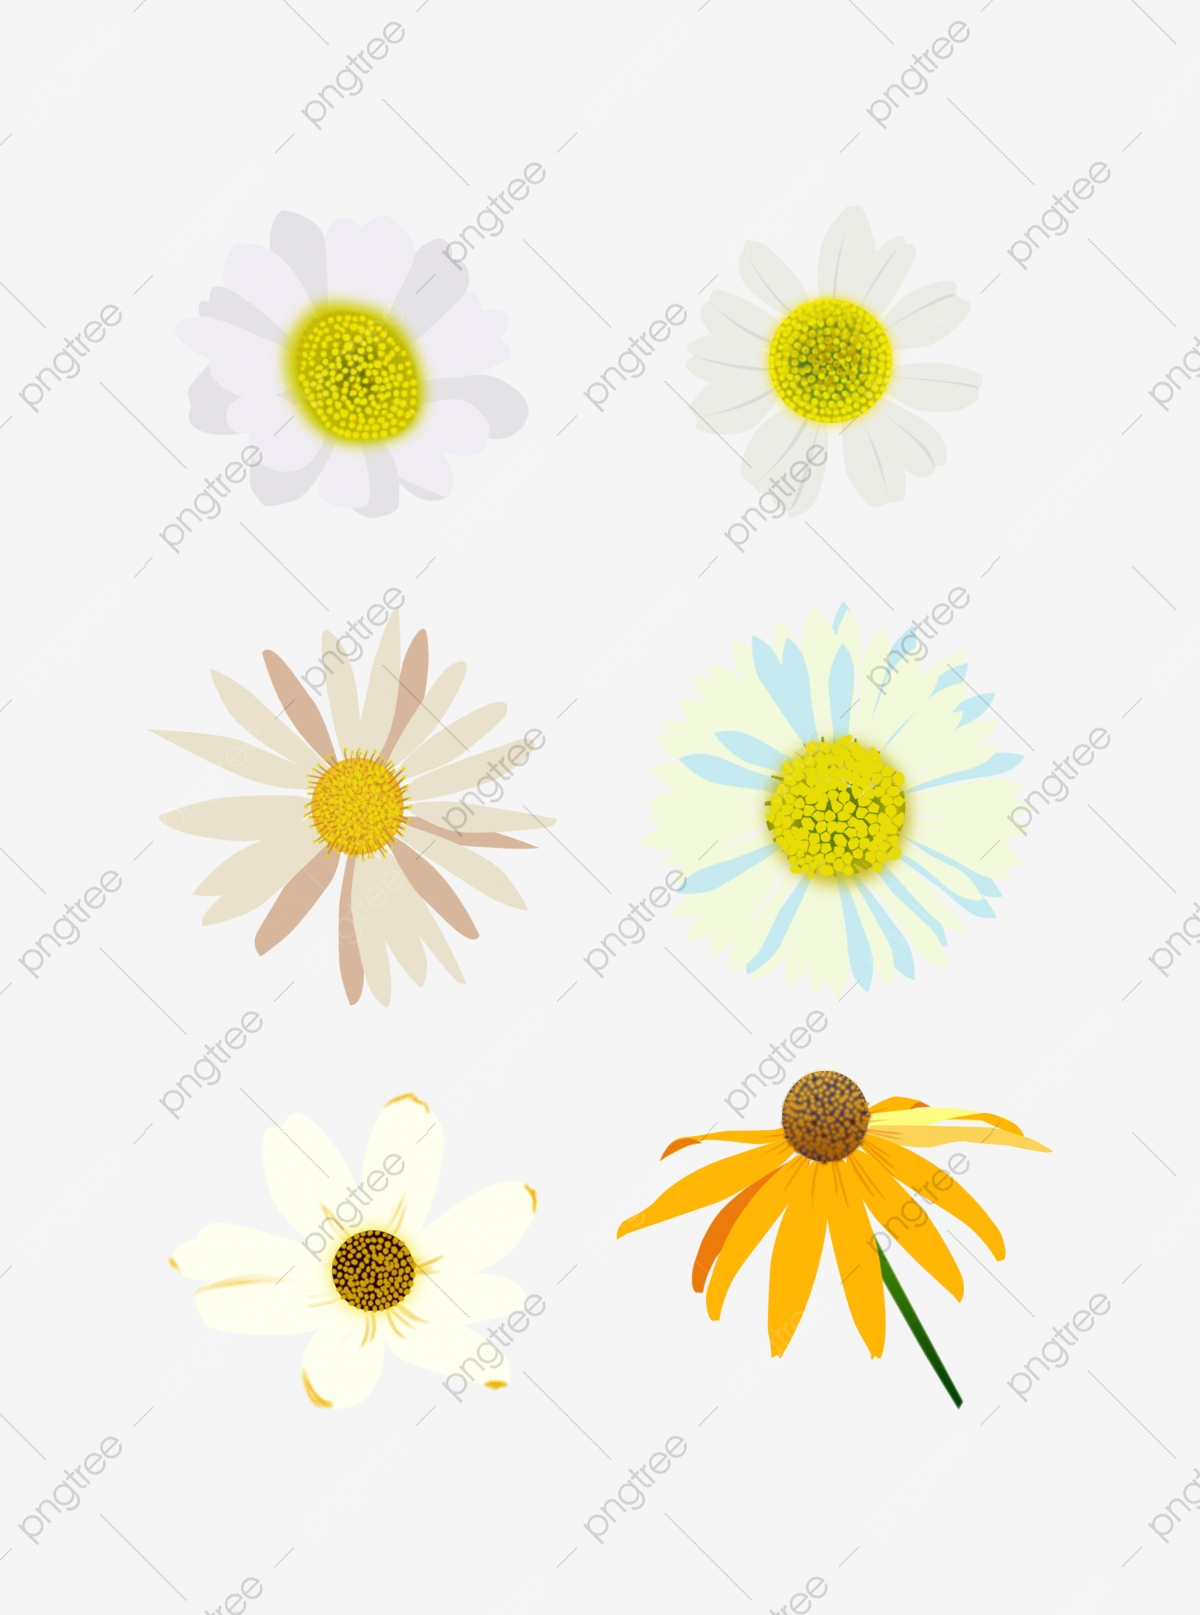 hight resolution of commercial use resource upgrade to premium plan and get license authorization upgradenow daisy daisy clipart